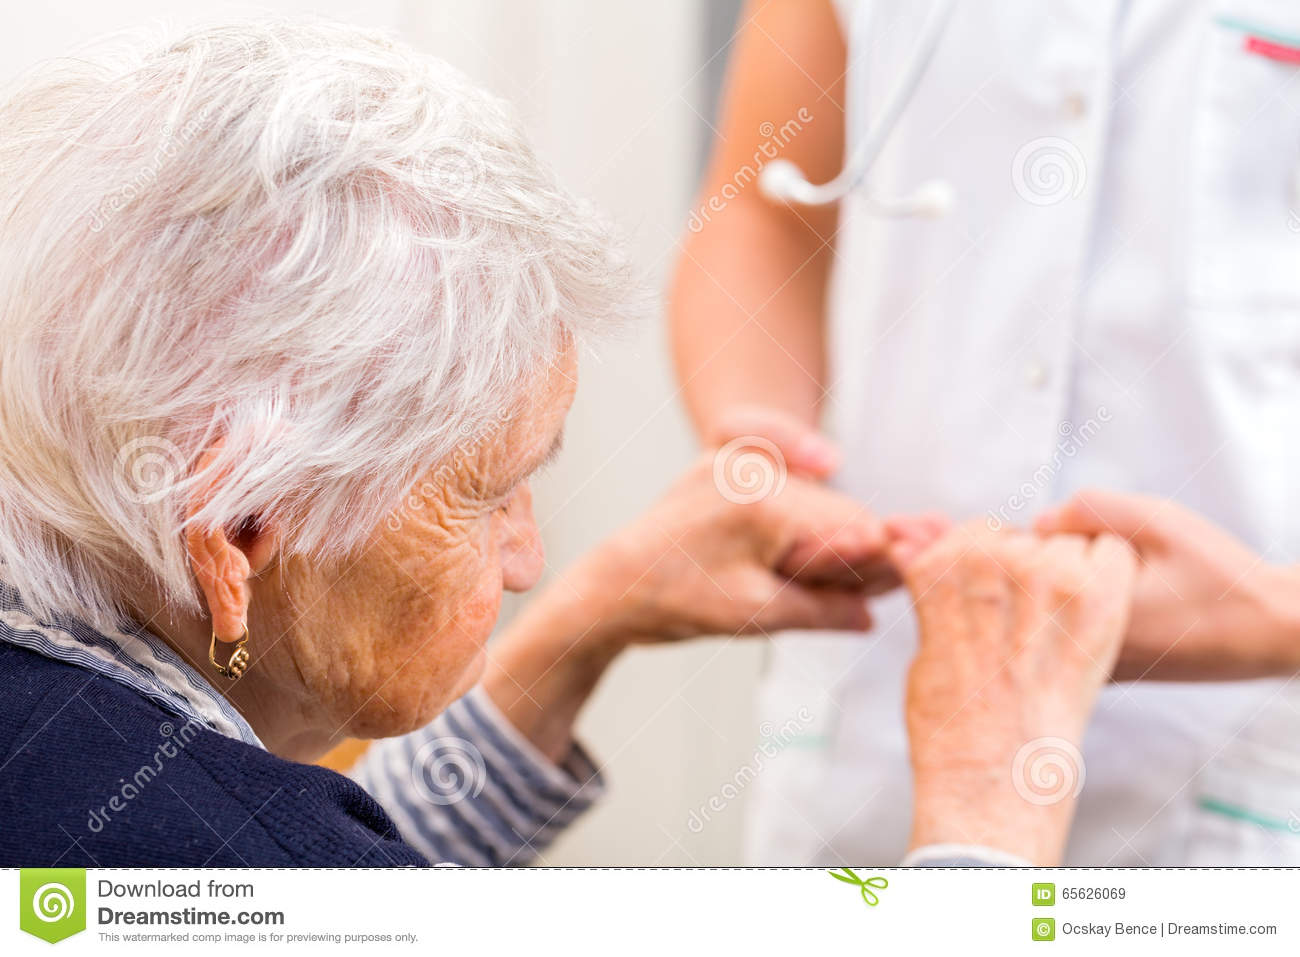 Helping Hands Stock Photo - Image: 65626069